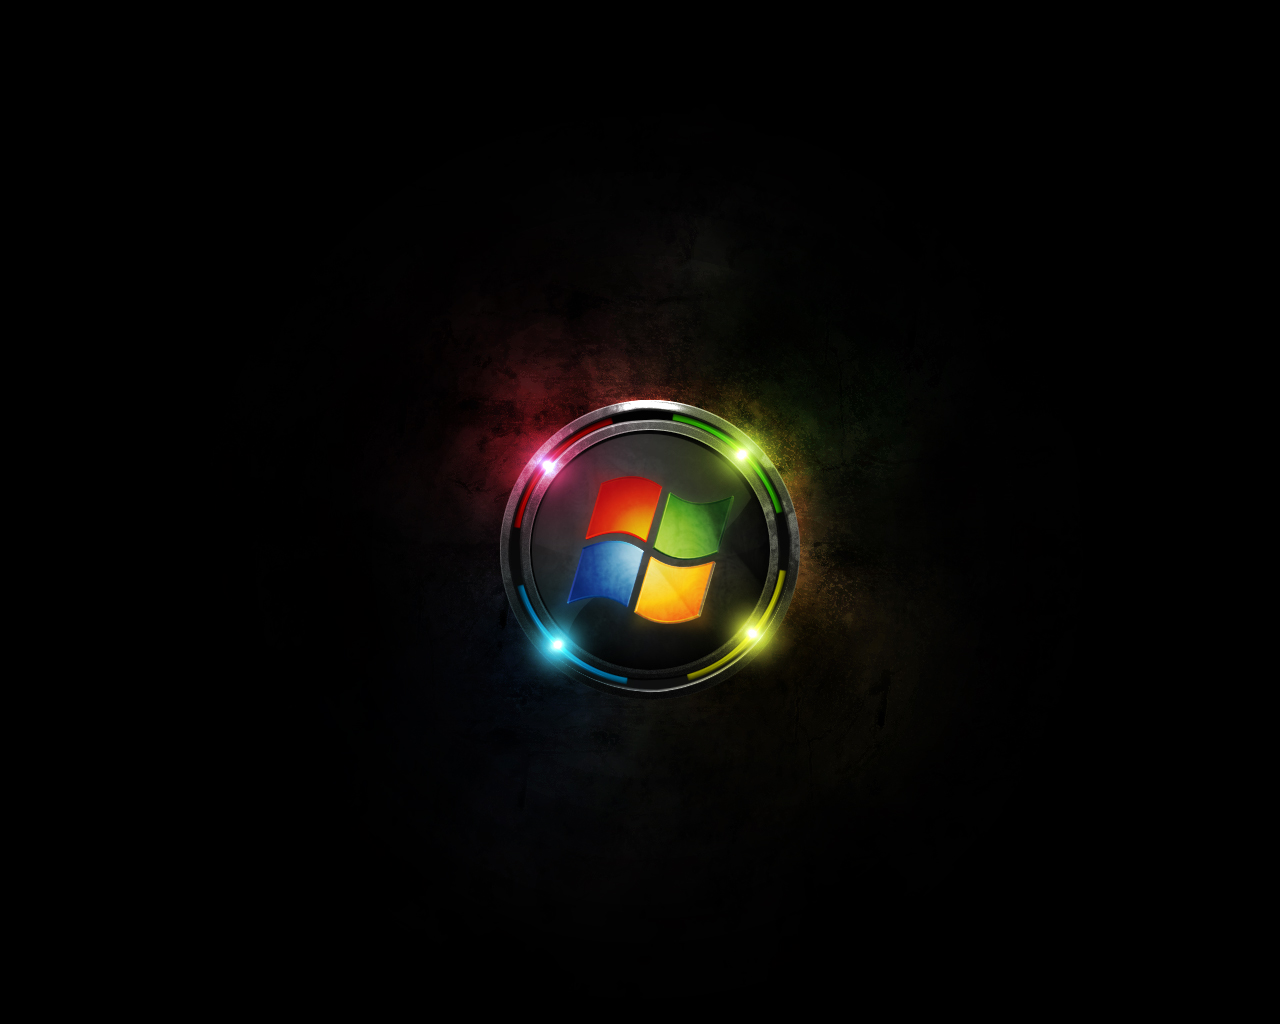 3D Wallpapers for Windows 10  WallpaperSafari